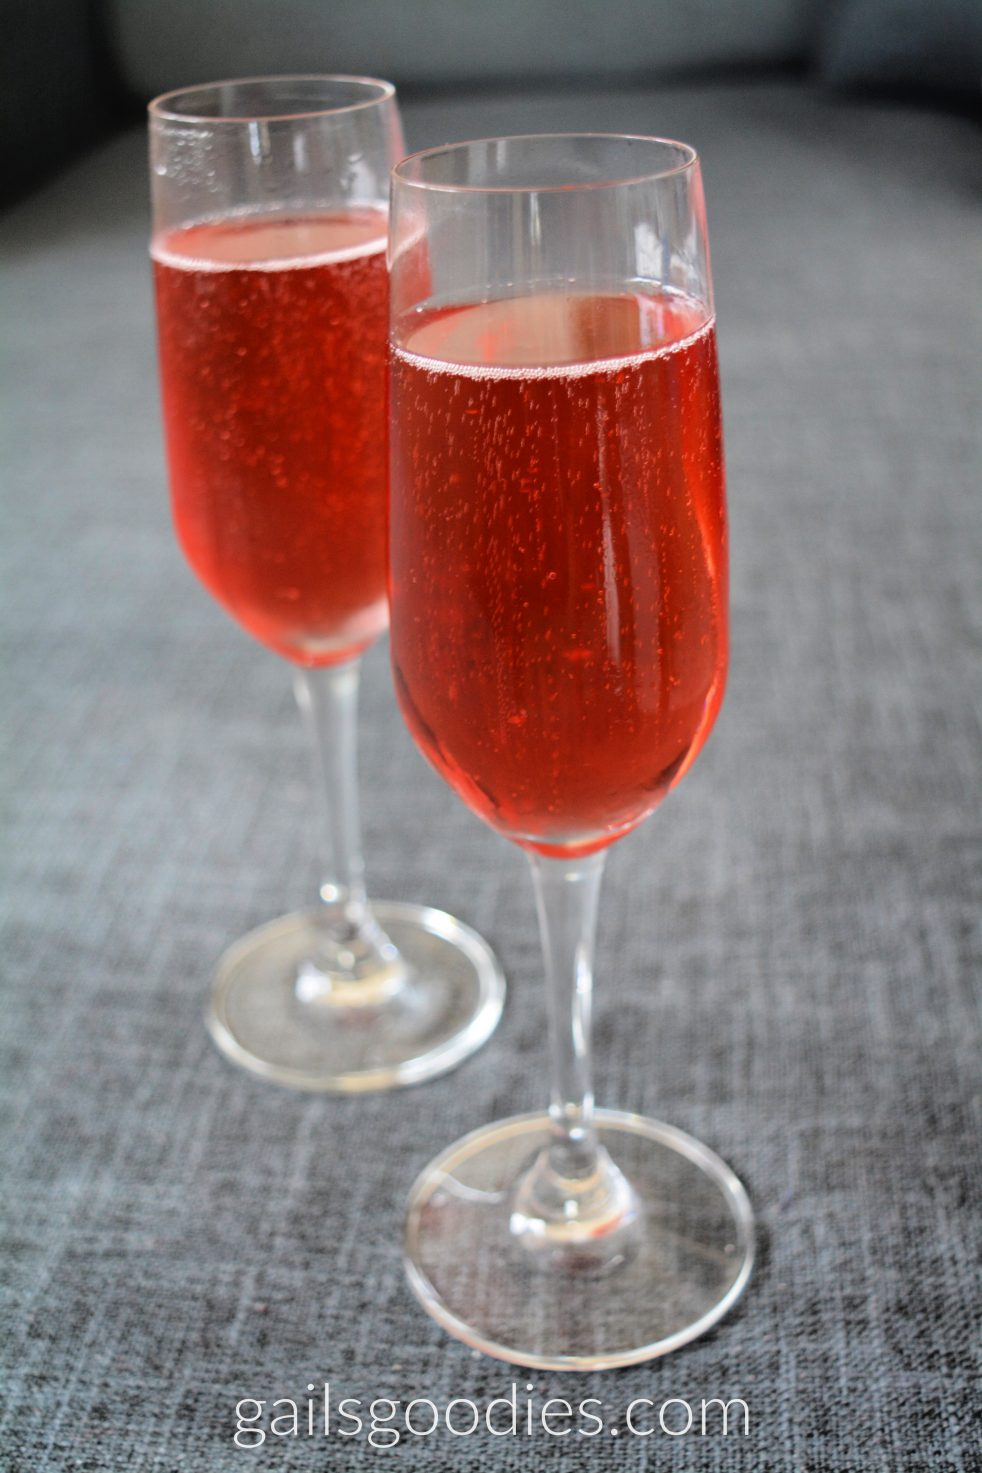 Two champagnes flute fille with clear cherry red liquid. One flute is just to the right of center at the front of the photo. The other is behind it and about 45 degrees to the left. Bubbles line the tops and are scattered on the sides of the liquid.